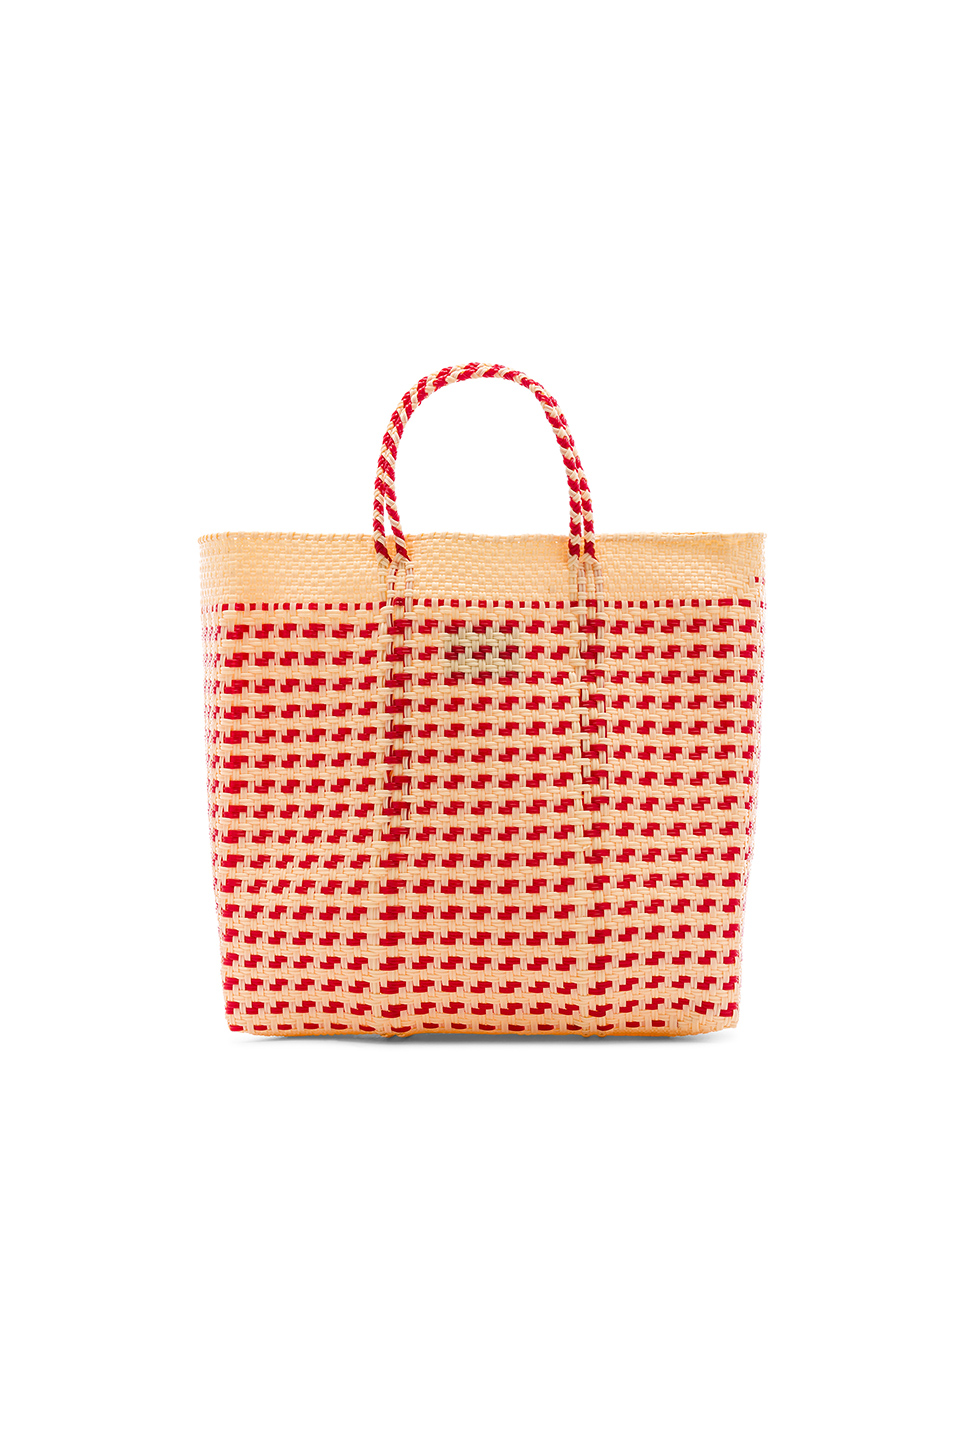 House of Harlow 1960 Cenote Tote